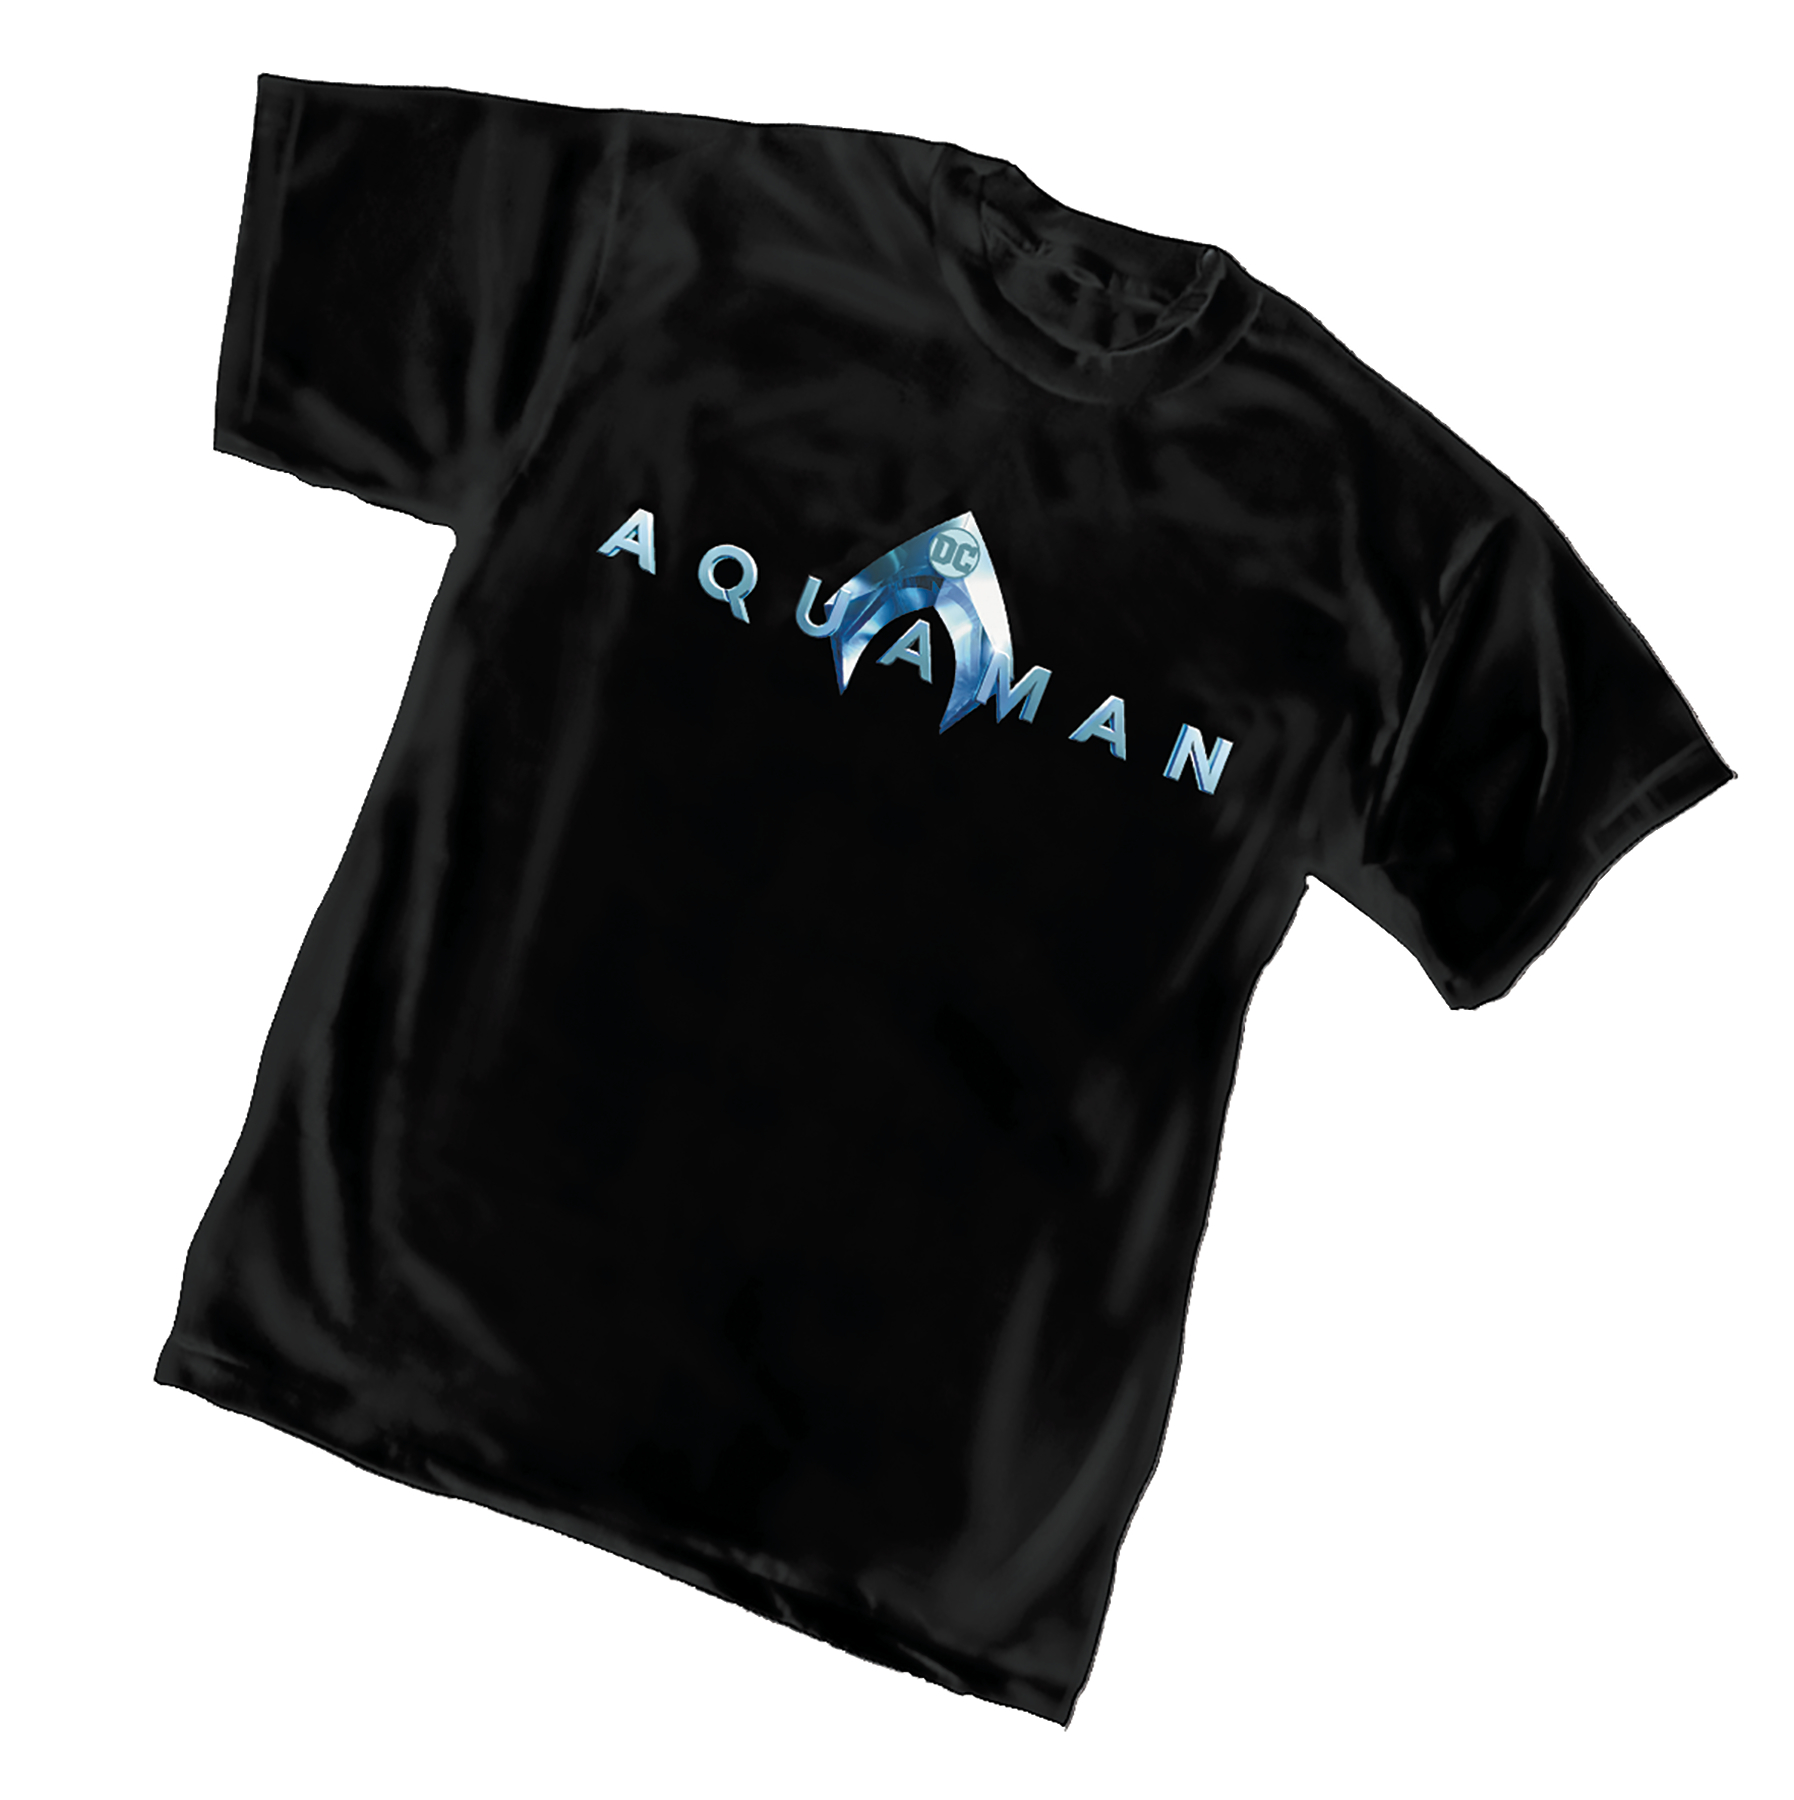 AQUAMAN MOVIE LOGO T/S SM